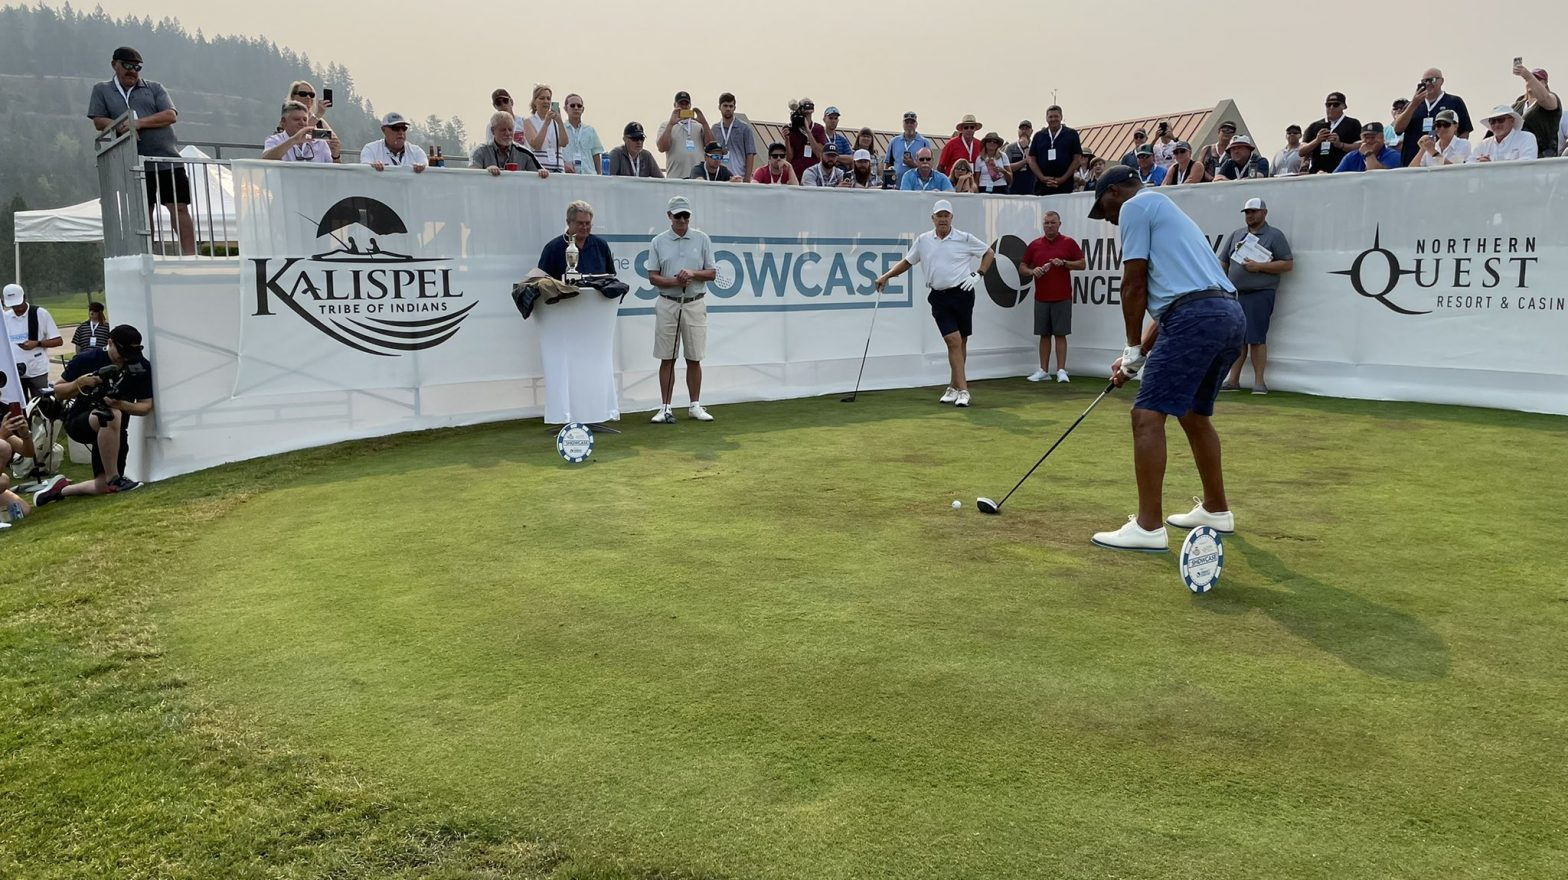 celebrities,-fans-return-to-the-showcase-golf-fundraiser-during-hot,-hazy-weekend